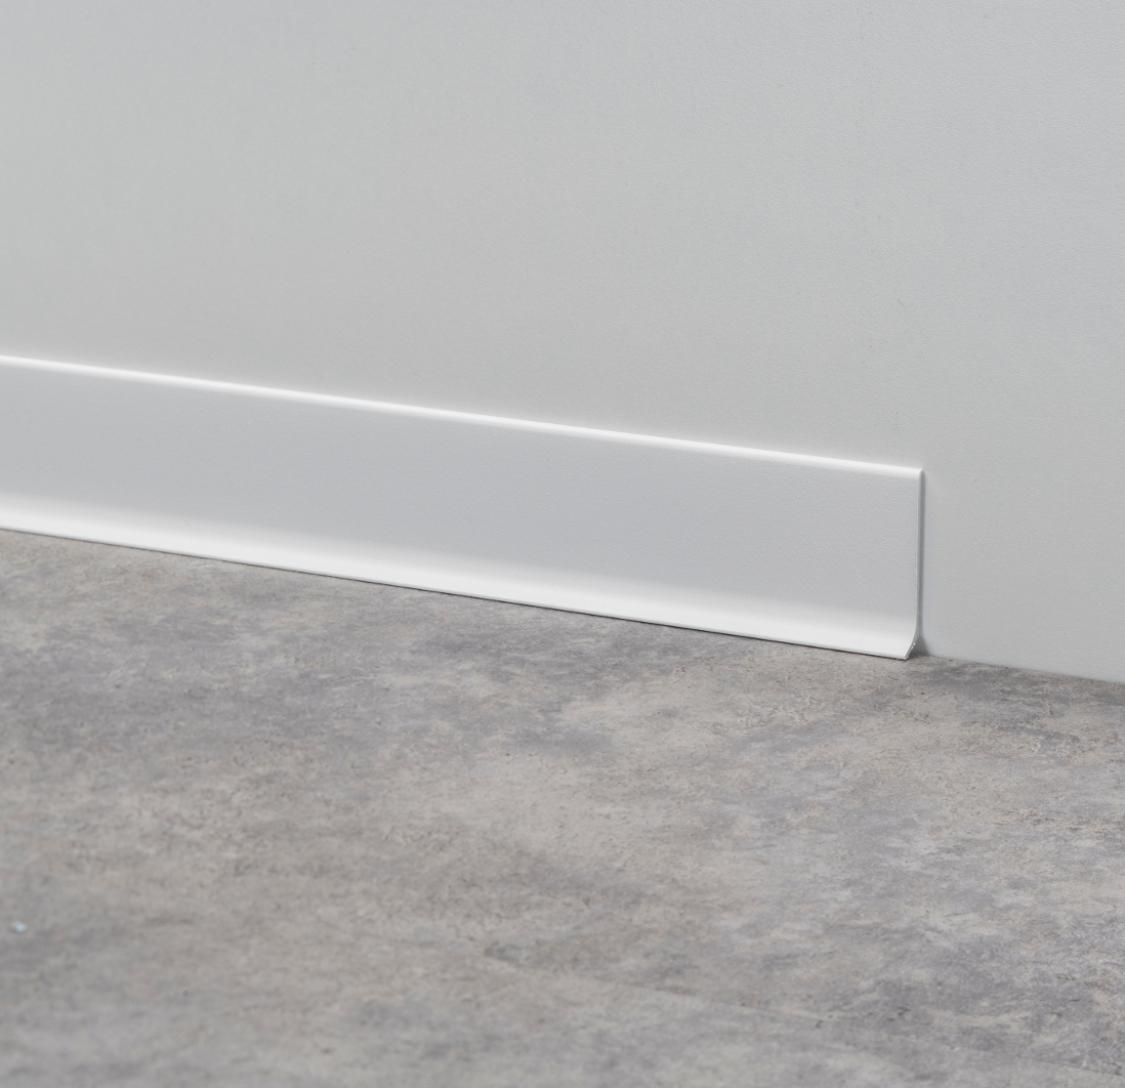 Self-adhesive Aluminum Skirting Profile 60mm Wall Protector Base Curved Metal Coved Skirting Board Baseboard